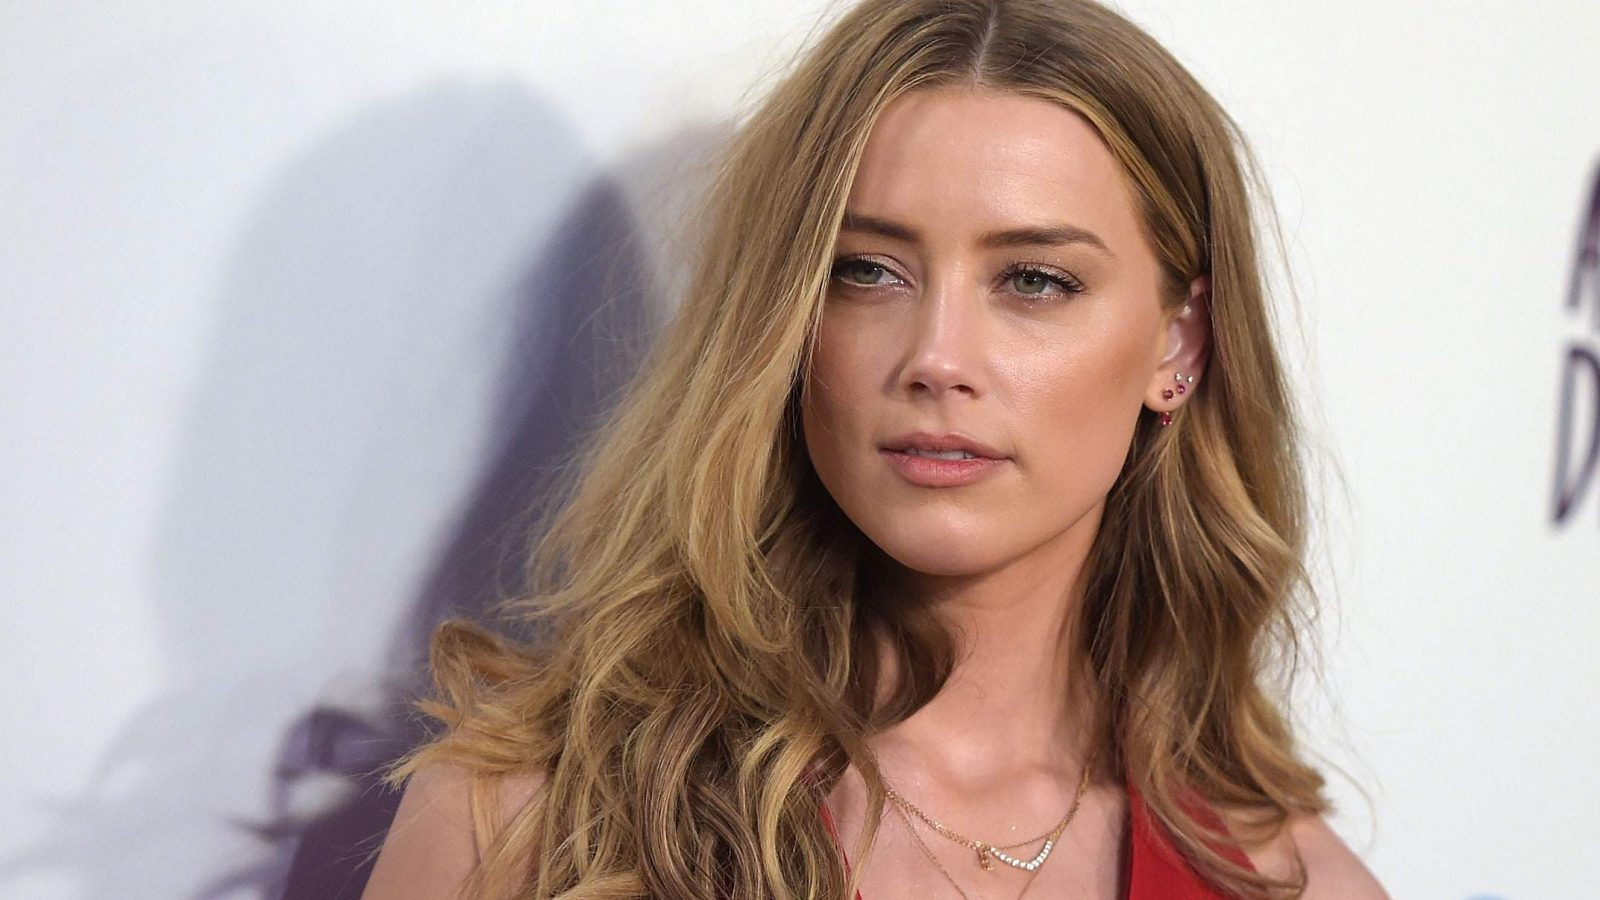 Petition To Remove Amber Heard From Aquaman 2, Currently ...